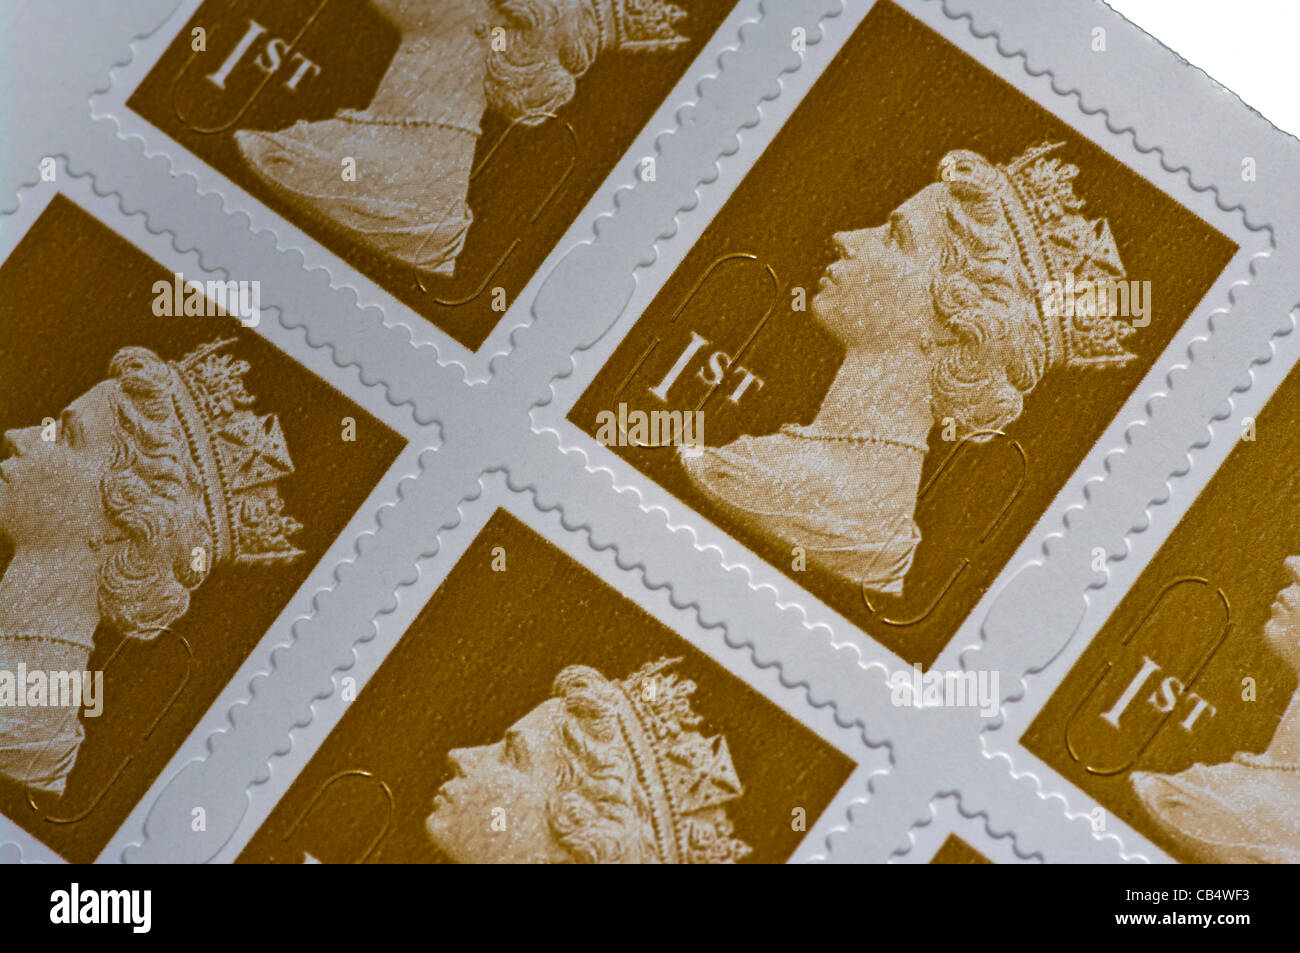 Royal Mail 1st First Class Postage Stamps UK - Stock Image